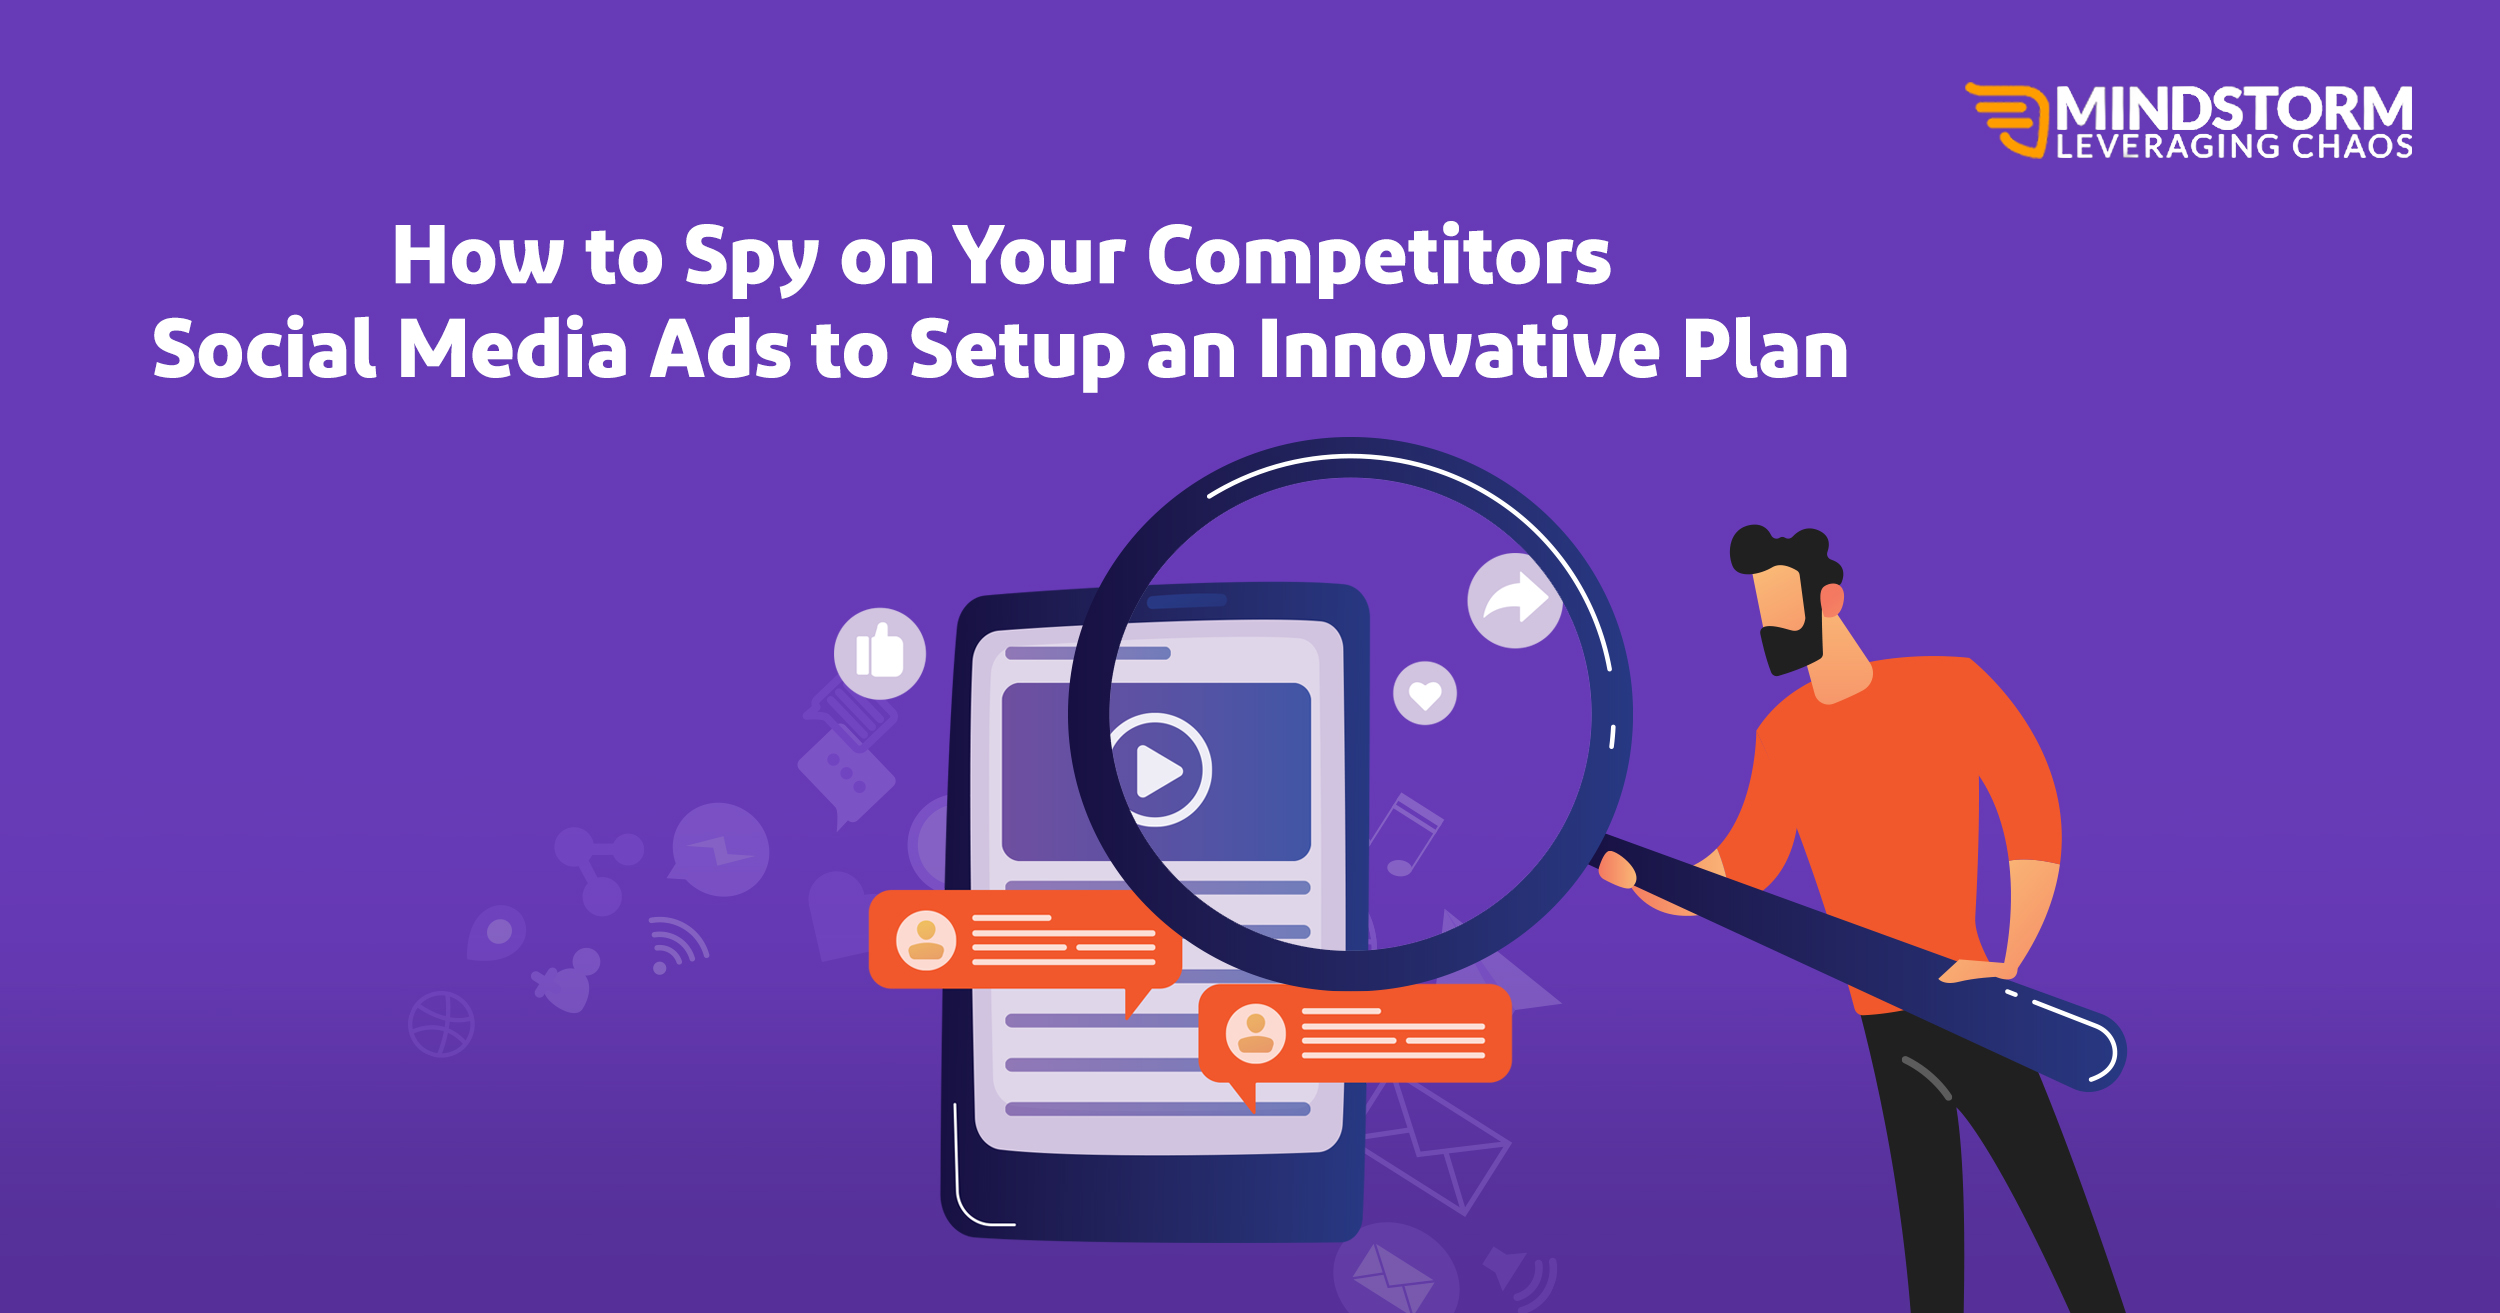 How to Spy on Your Competitor's Social Media Ads?